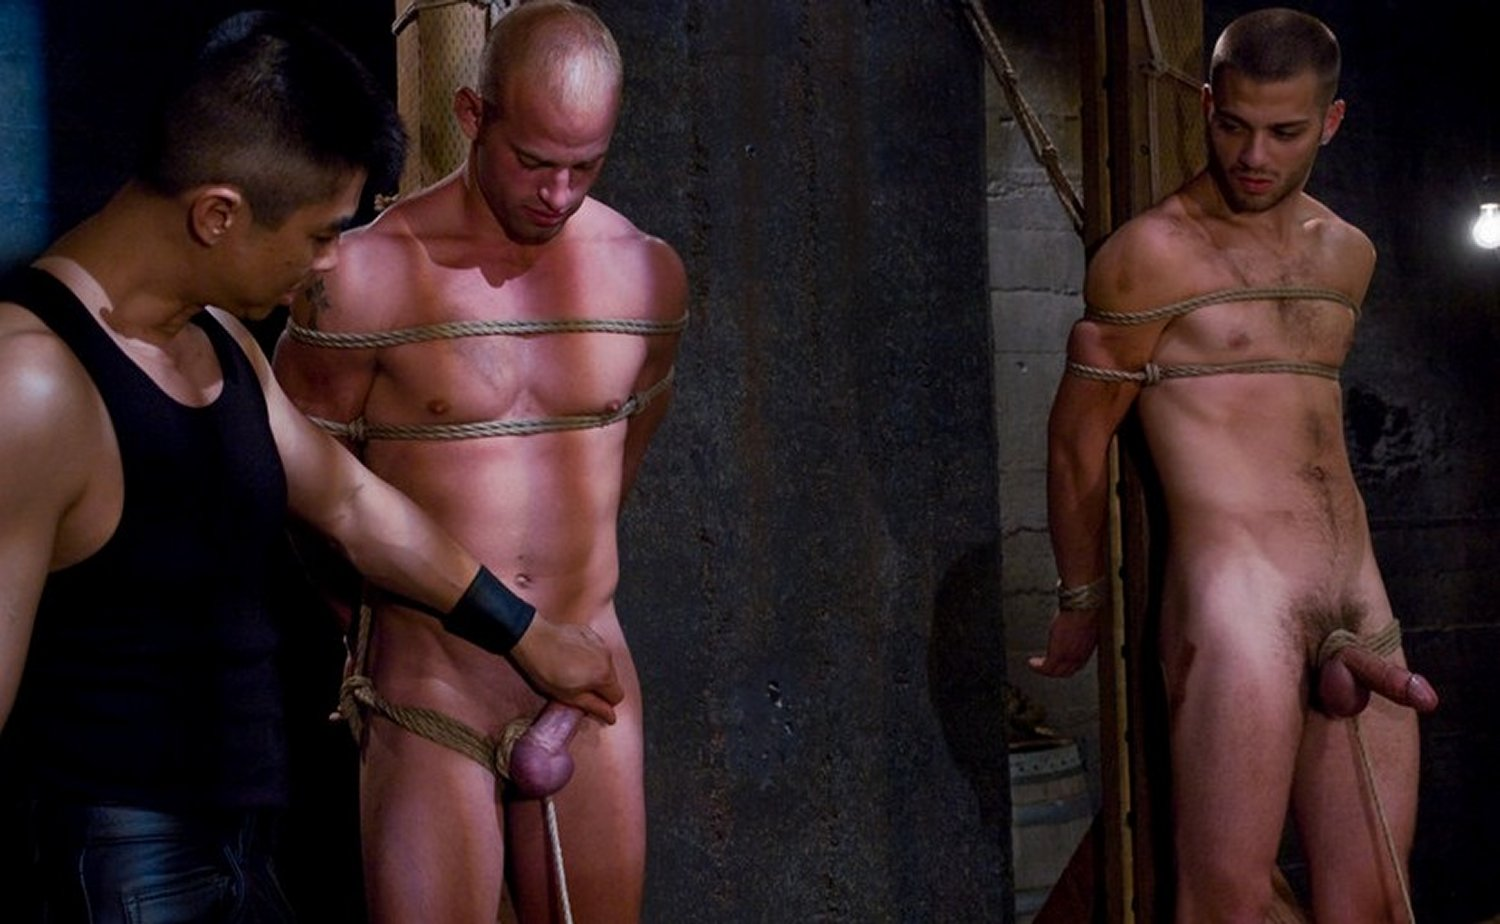 Gay sex in chains